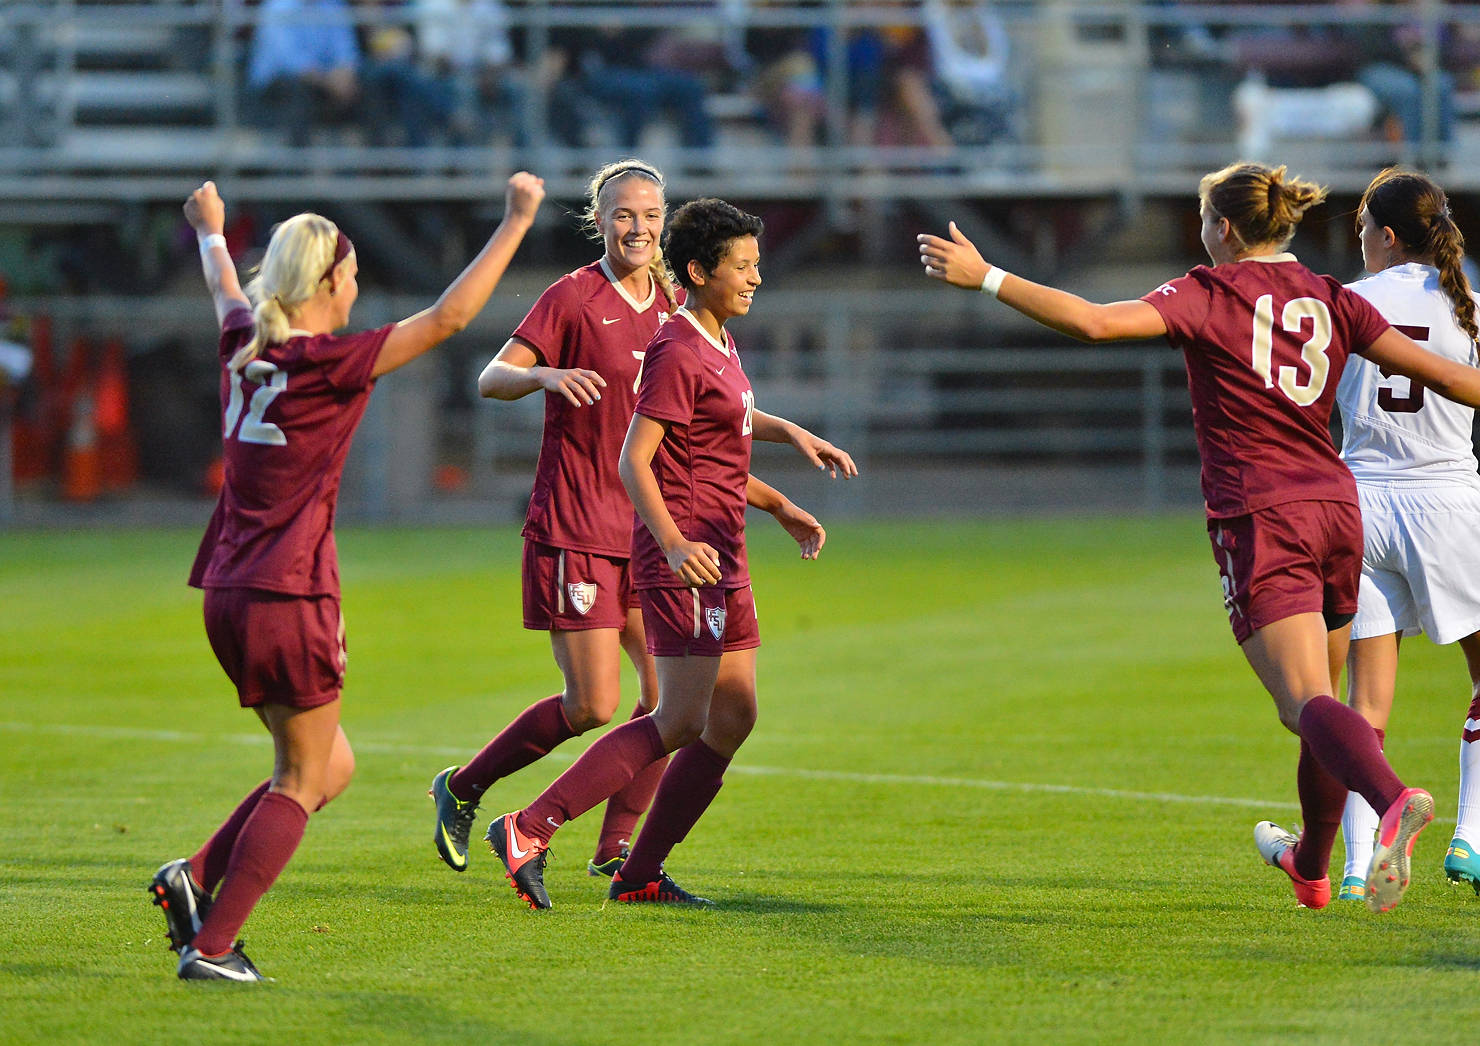 The Seminoles celebrate after Nora Kervroedan scored the equalizer in the 62nd minute.